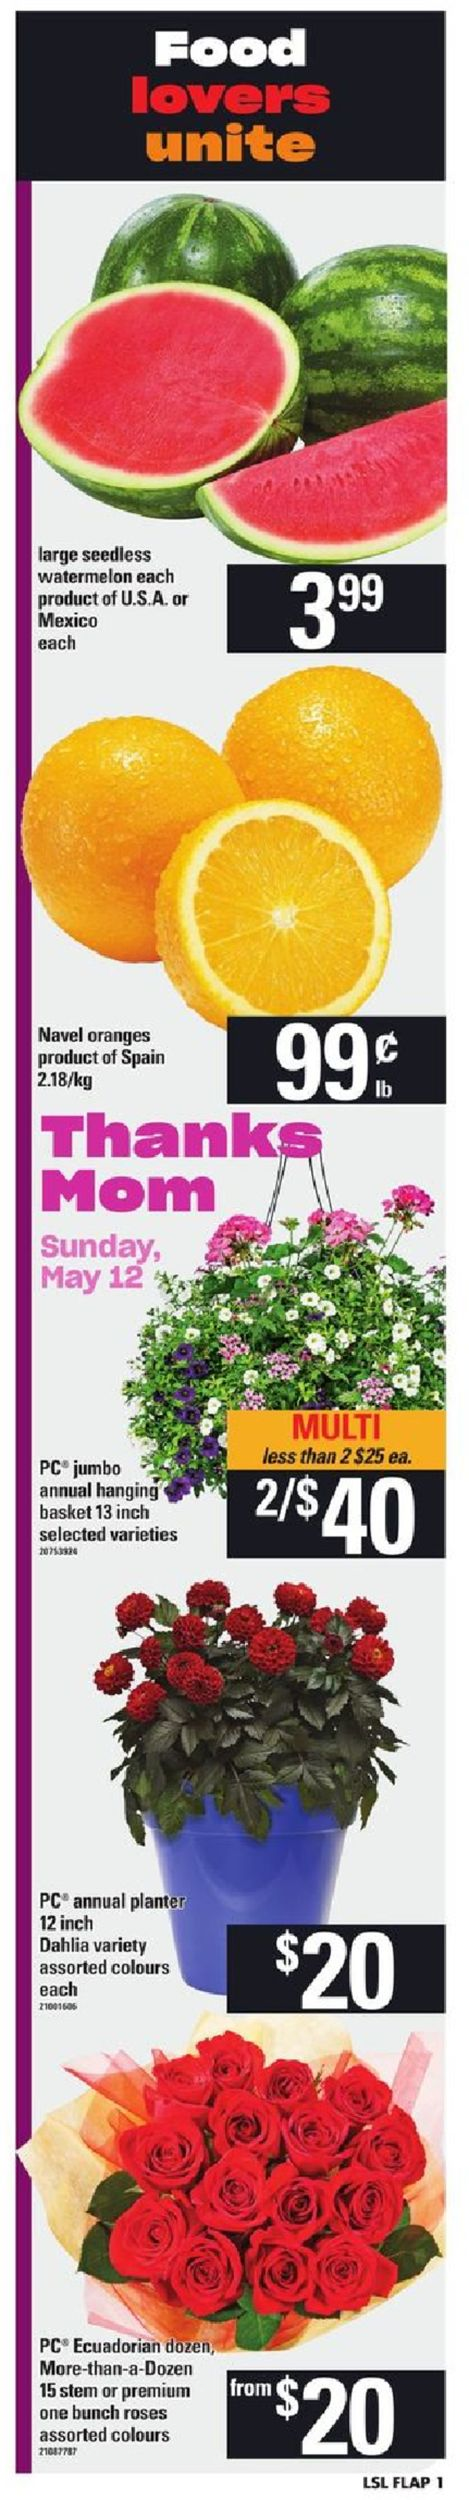 Loblaws Flyer - 05/09-05/15/2019